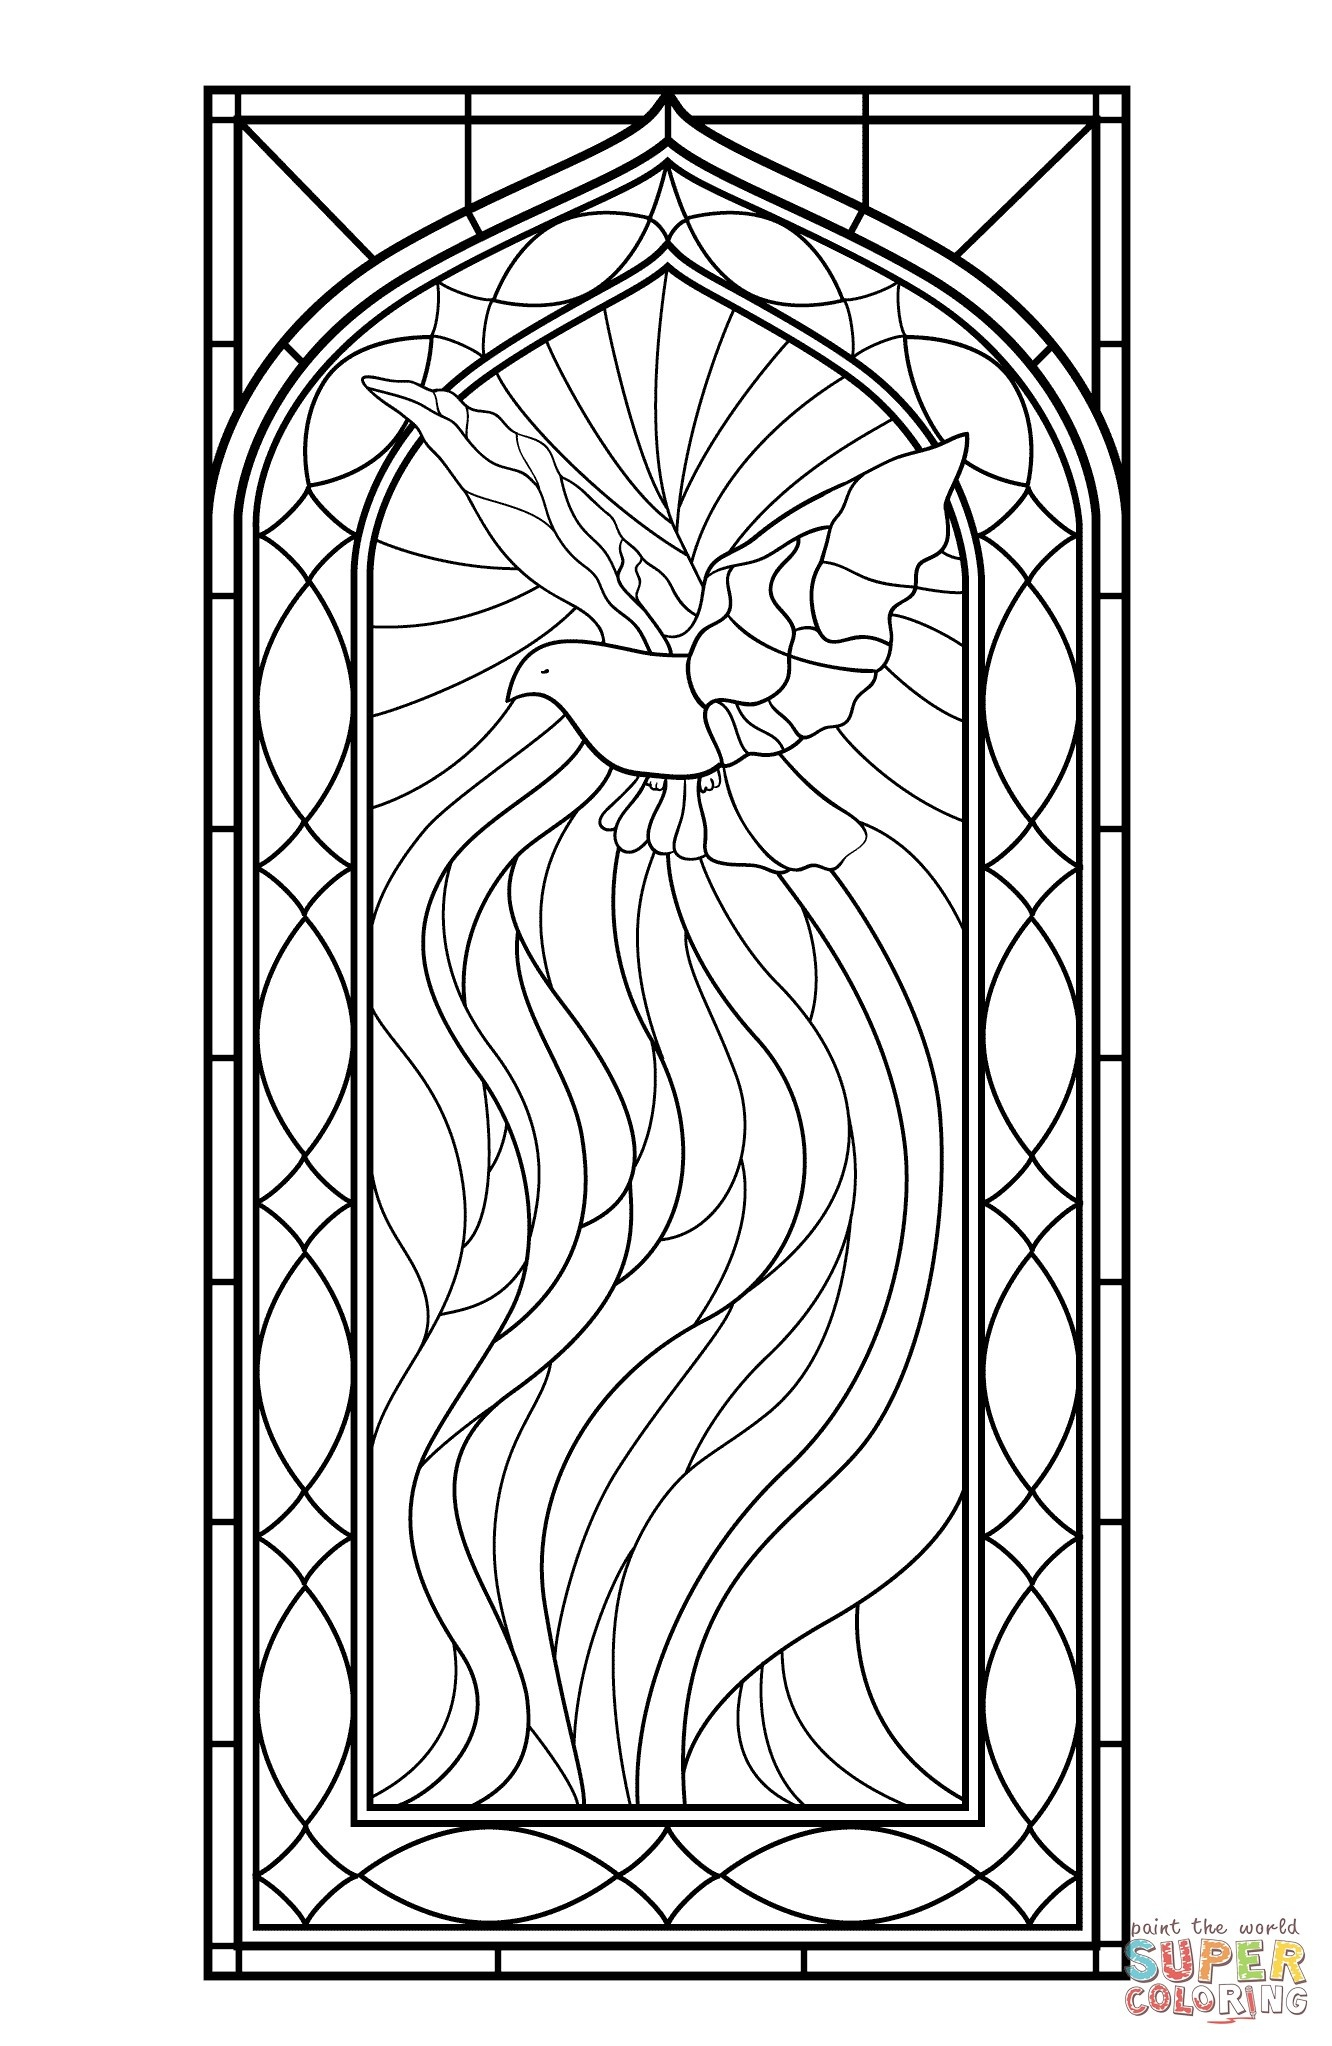 17 Inspirational Free Printable Stain Glass Patterns | Koprufotograflari - Free Printable Stained Glass Patterns